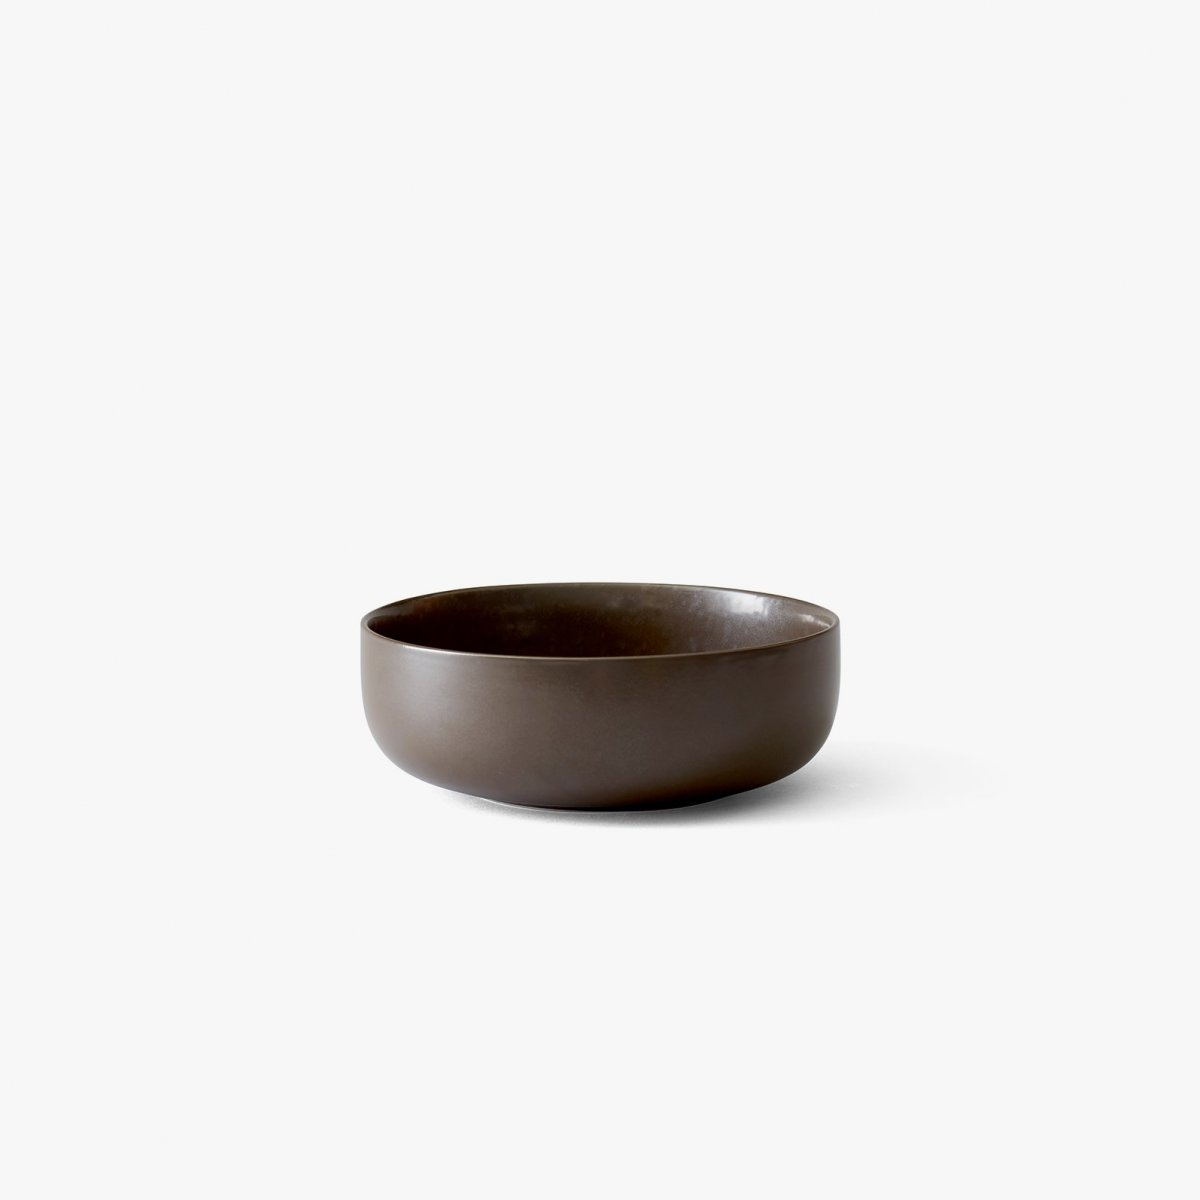 New Norm Bowl, Ø 17.5 cm, dark glazed.